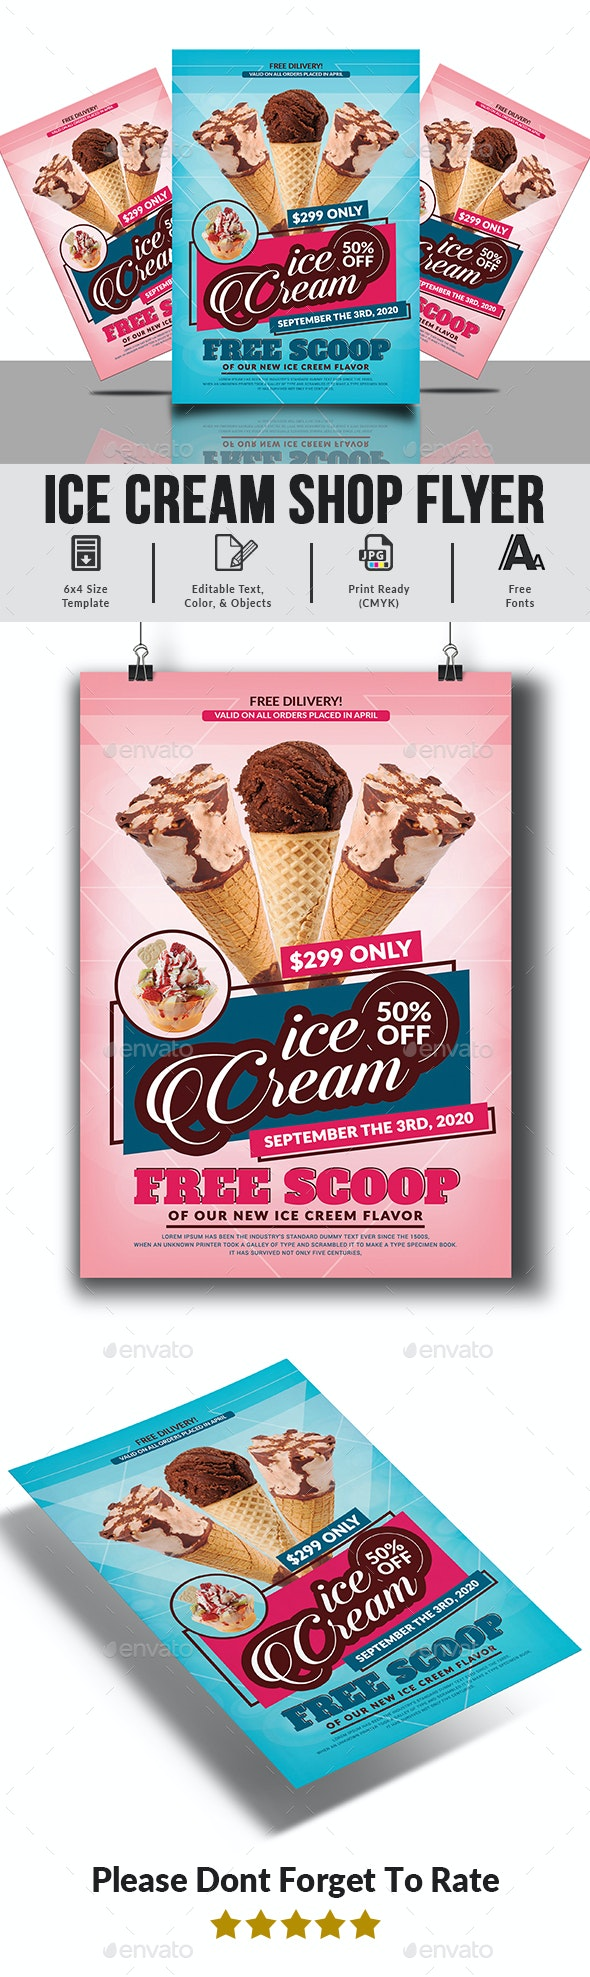 Ice Cream Flyer Template - Commerce Flyers